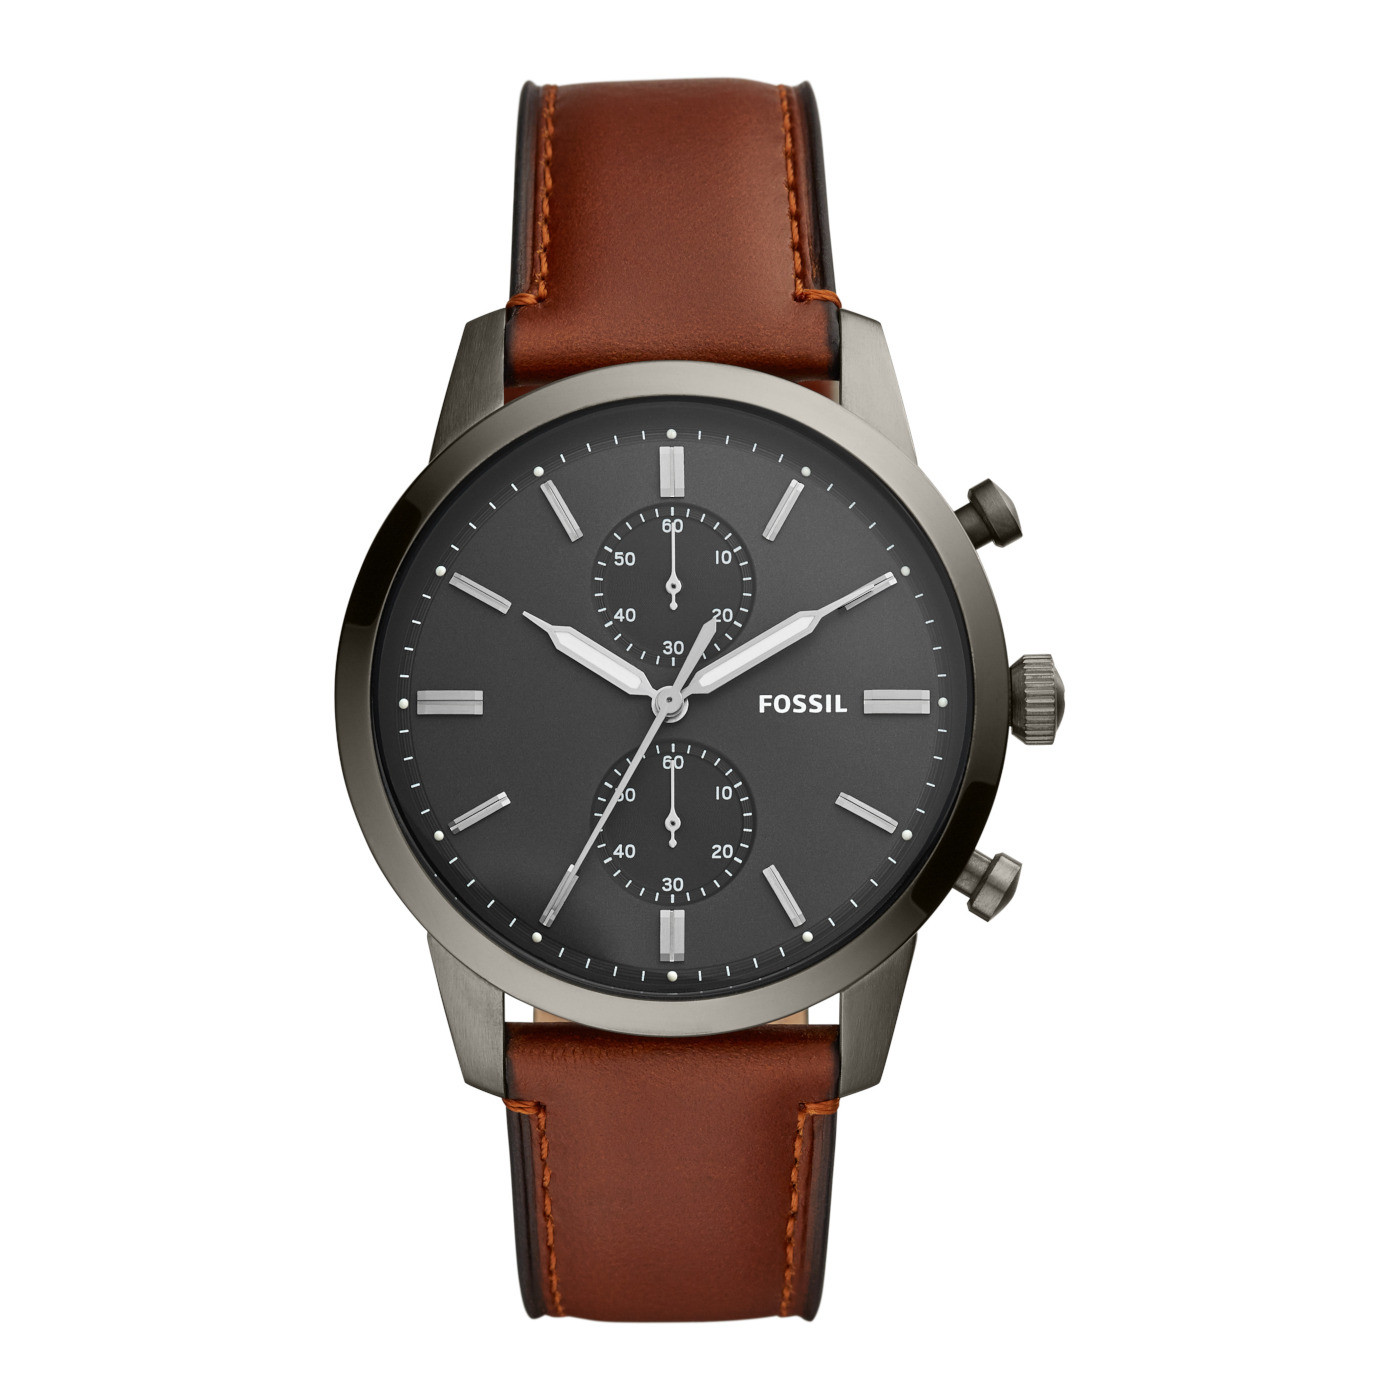 Fossil Men's Townsman Chronograph Amber Leather Watch FS5522